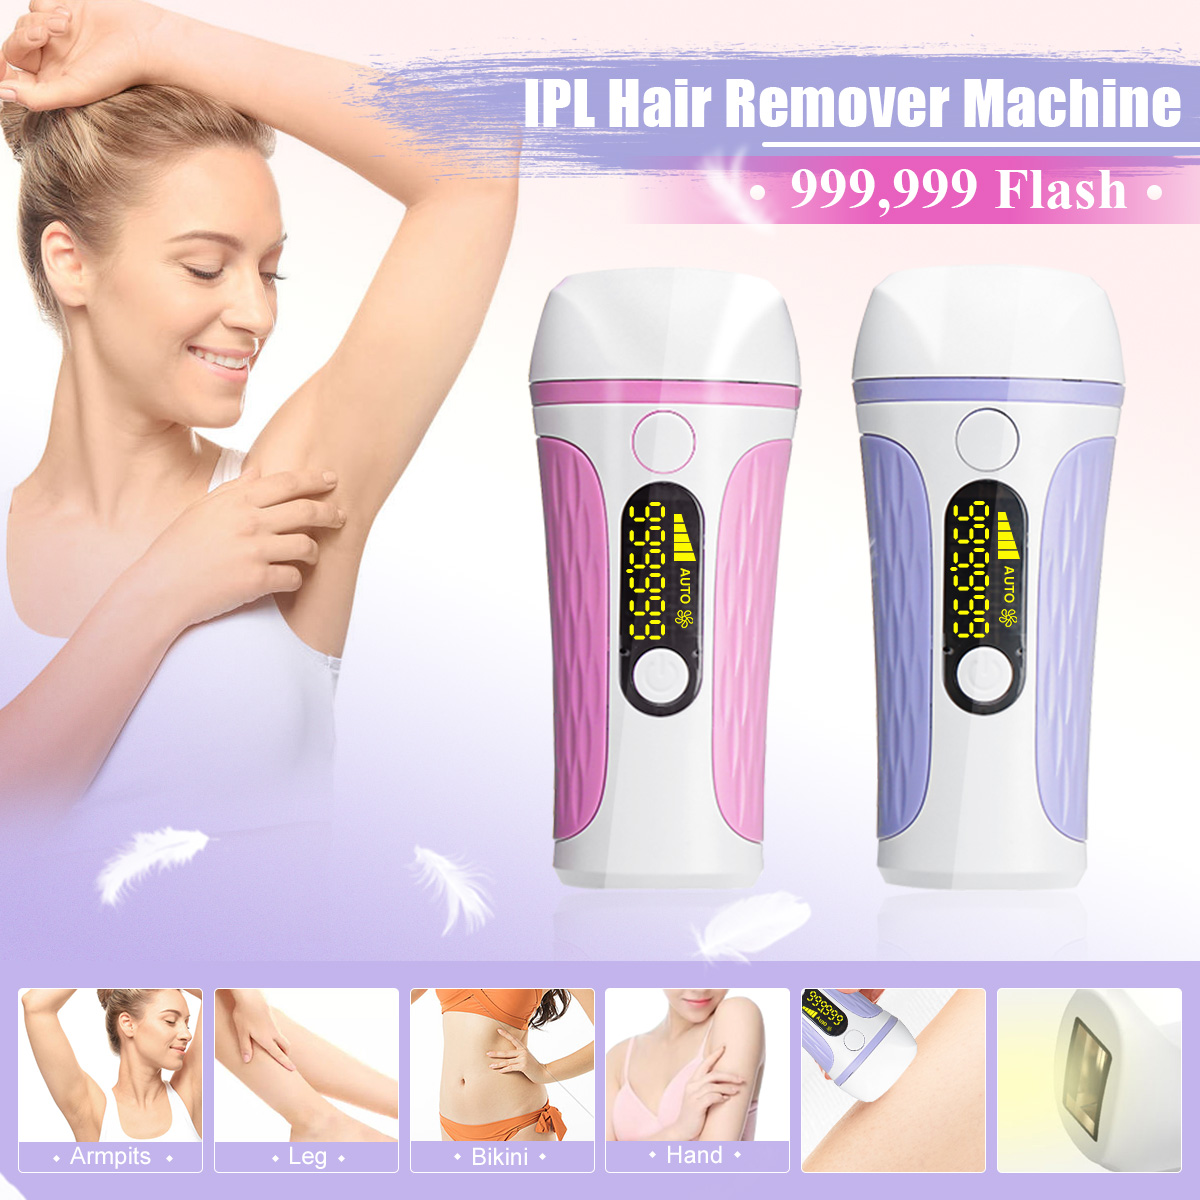 IPL Laser Hair Removal 999,900 Flash LCD Display Epilator Permanent Bikini Trimmer Painless Vancostar Electric Depilador Laser